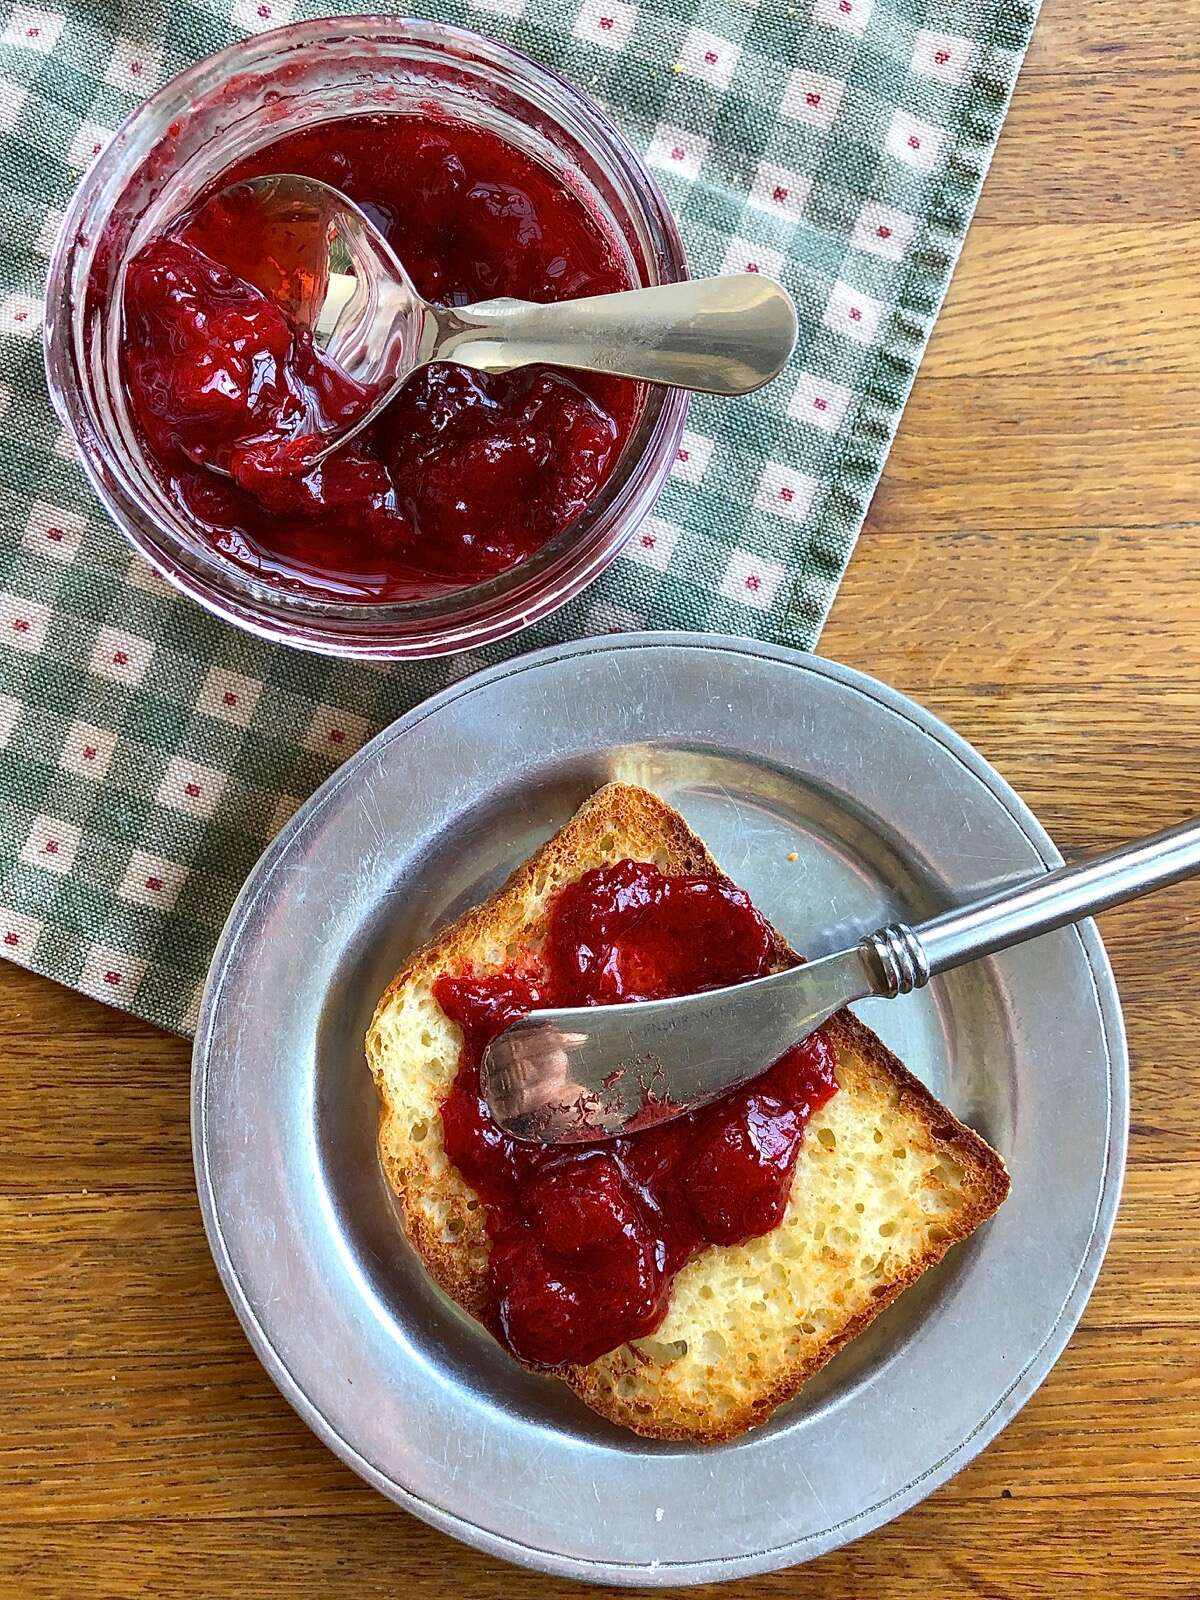 Slice of buttered toast with strawberry jam, jar of jam with spoon.